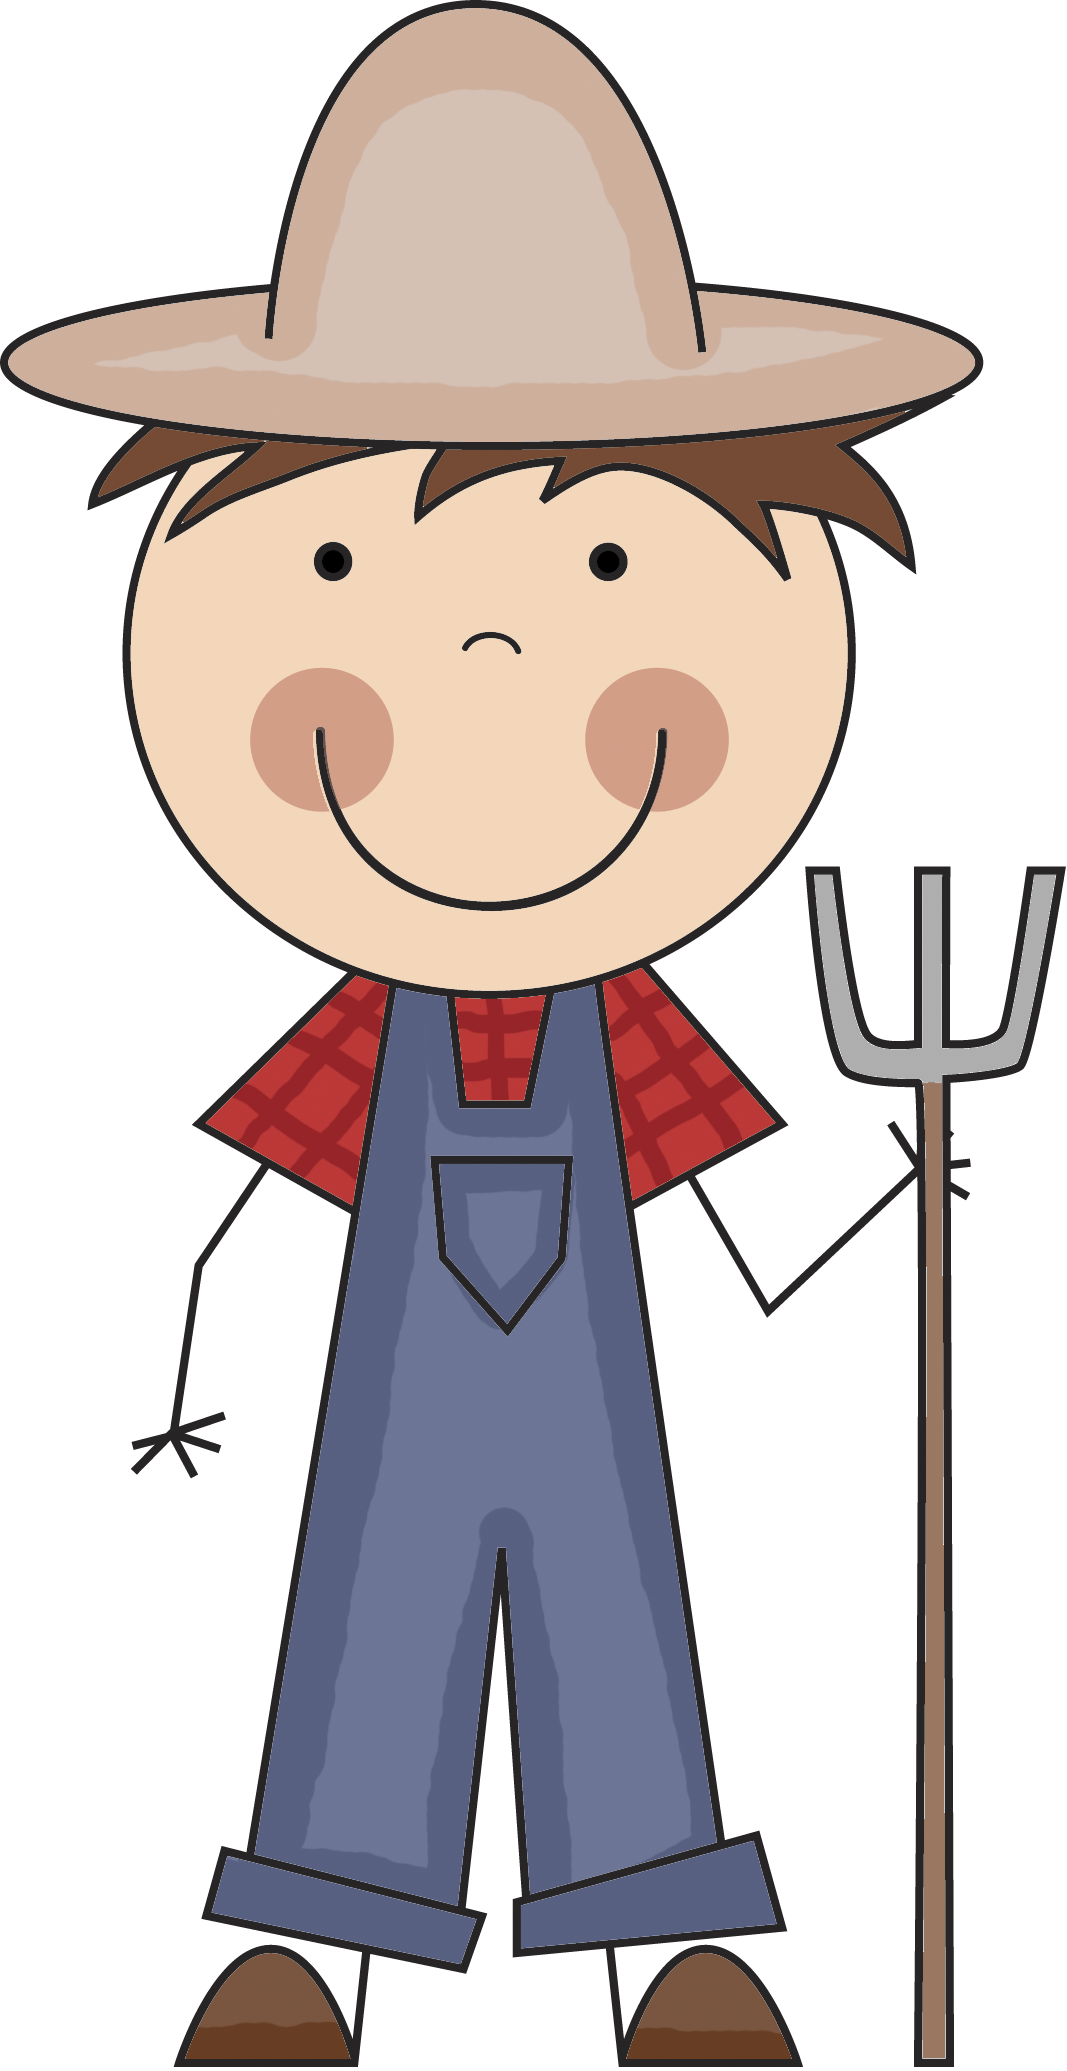 banner Helper clipart farmer. Png images free download